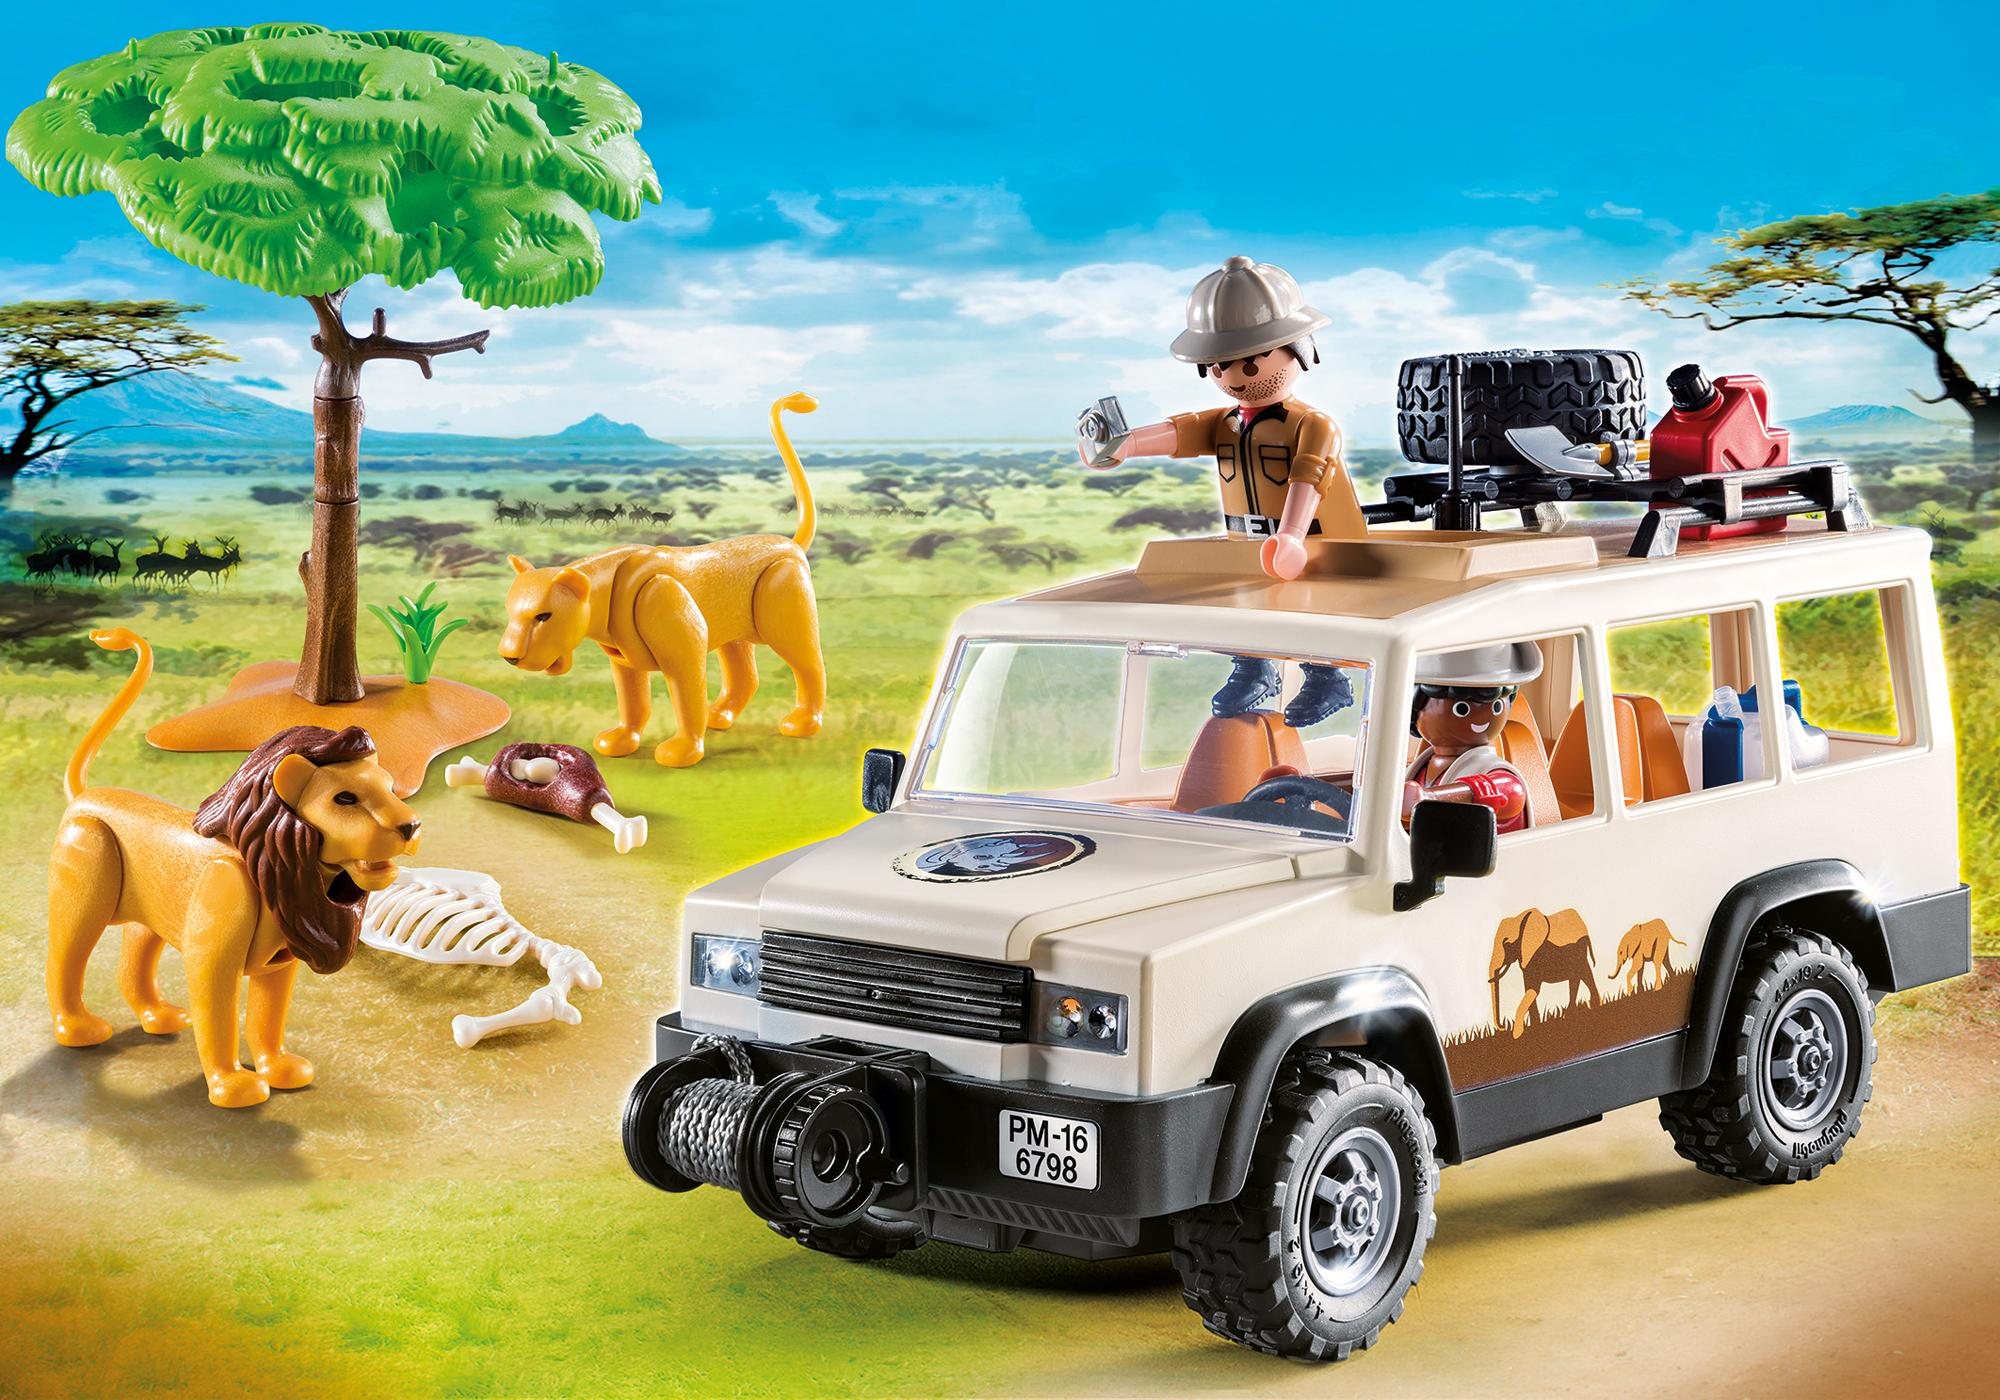 http://media.playmobil.com/i/playmobil/6798_product_detail